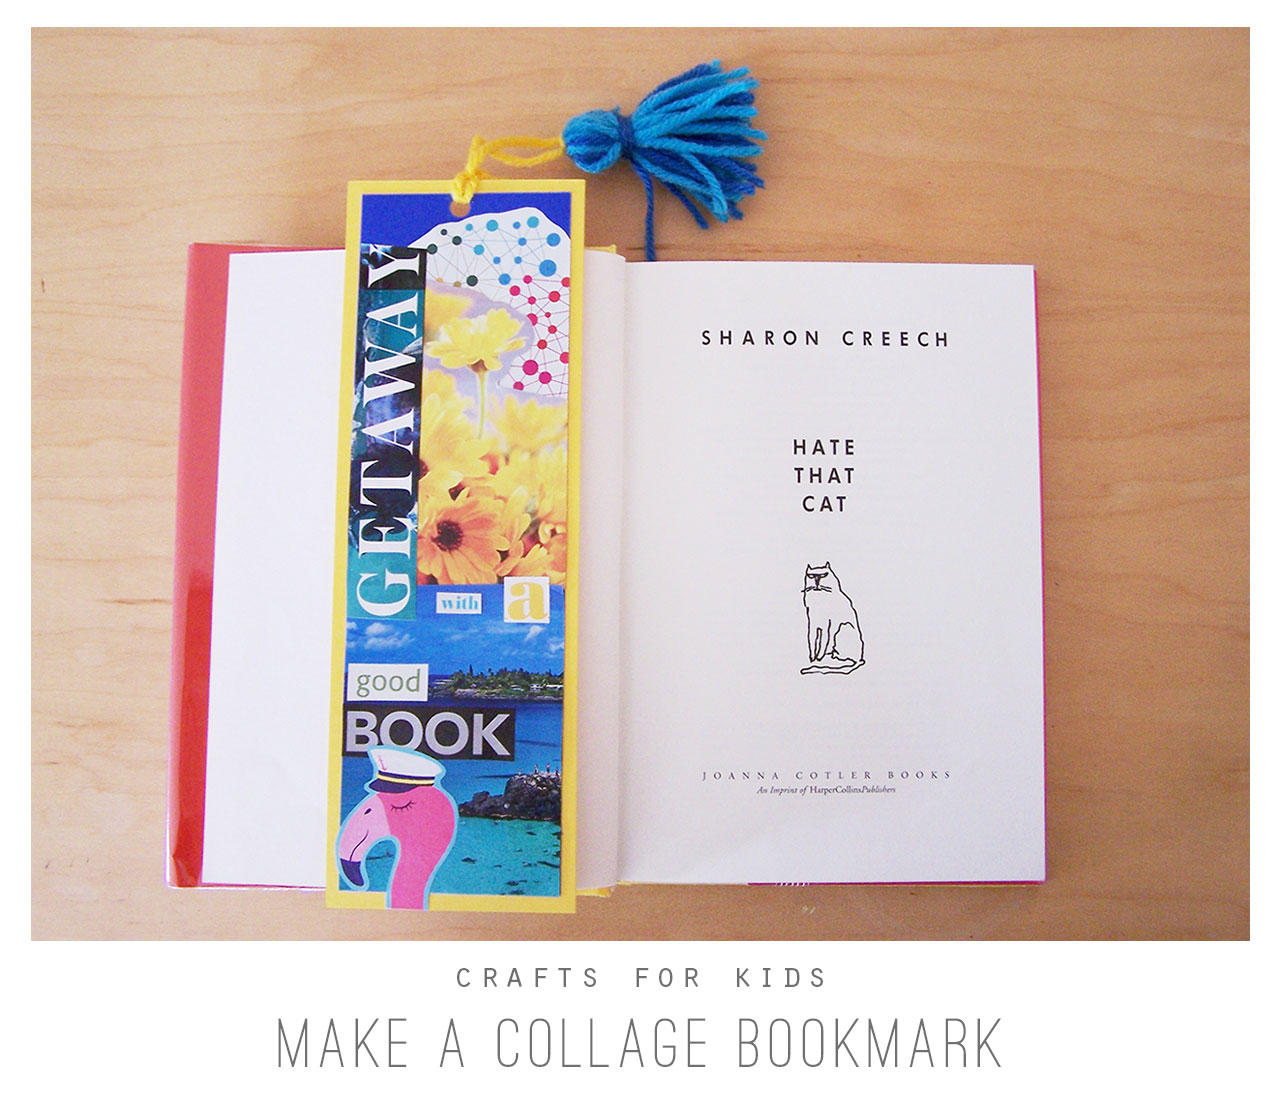 Crafts for Kids:Make a Collage Bookmark